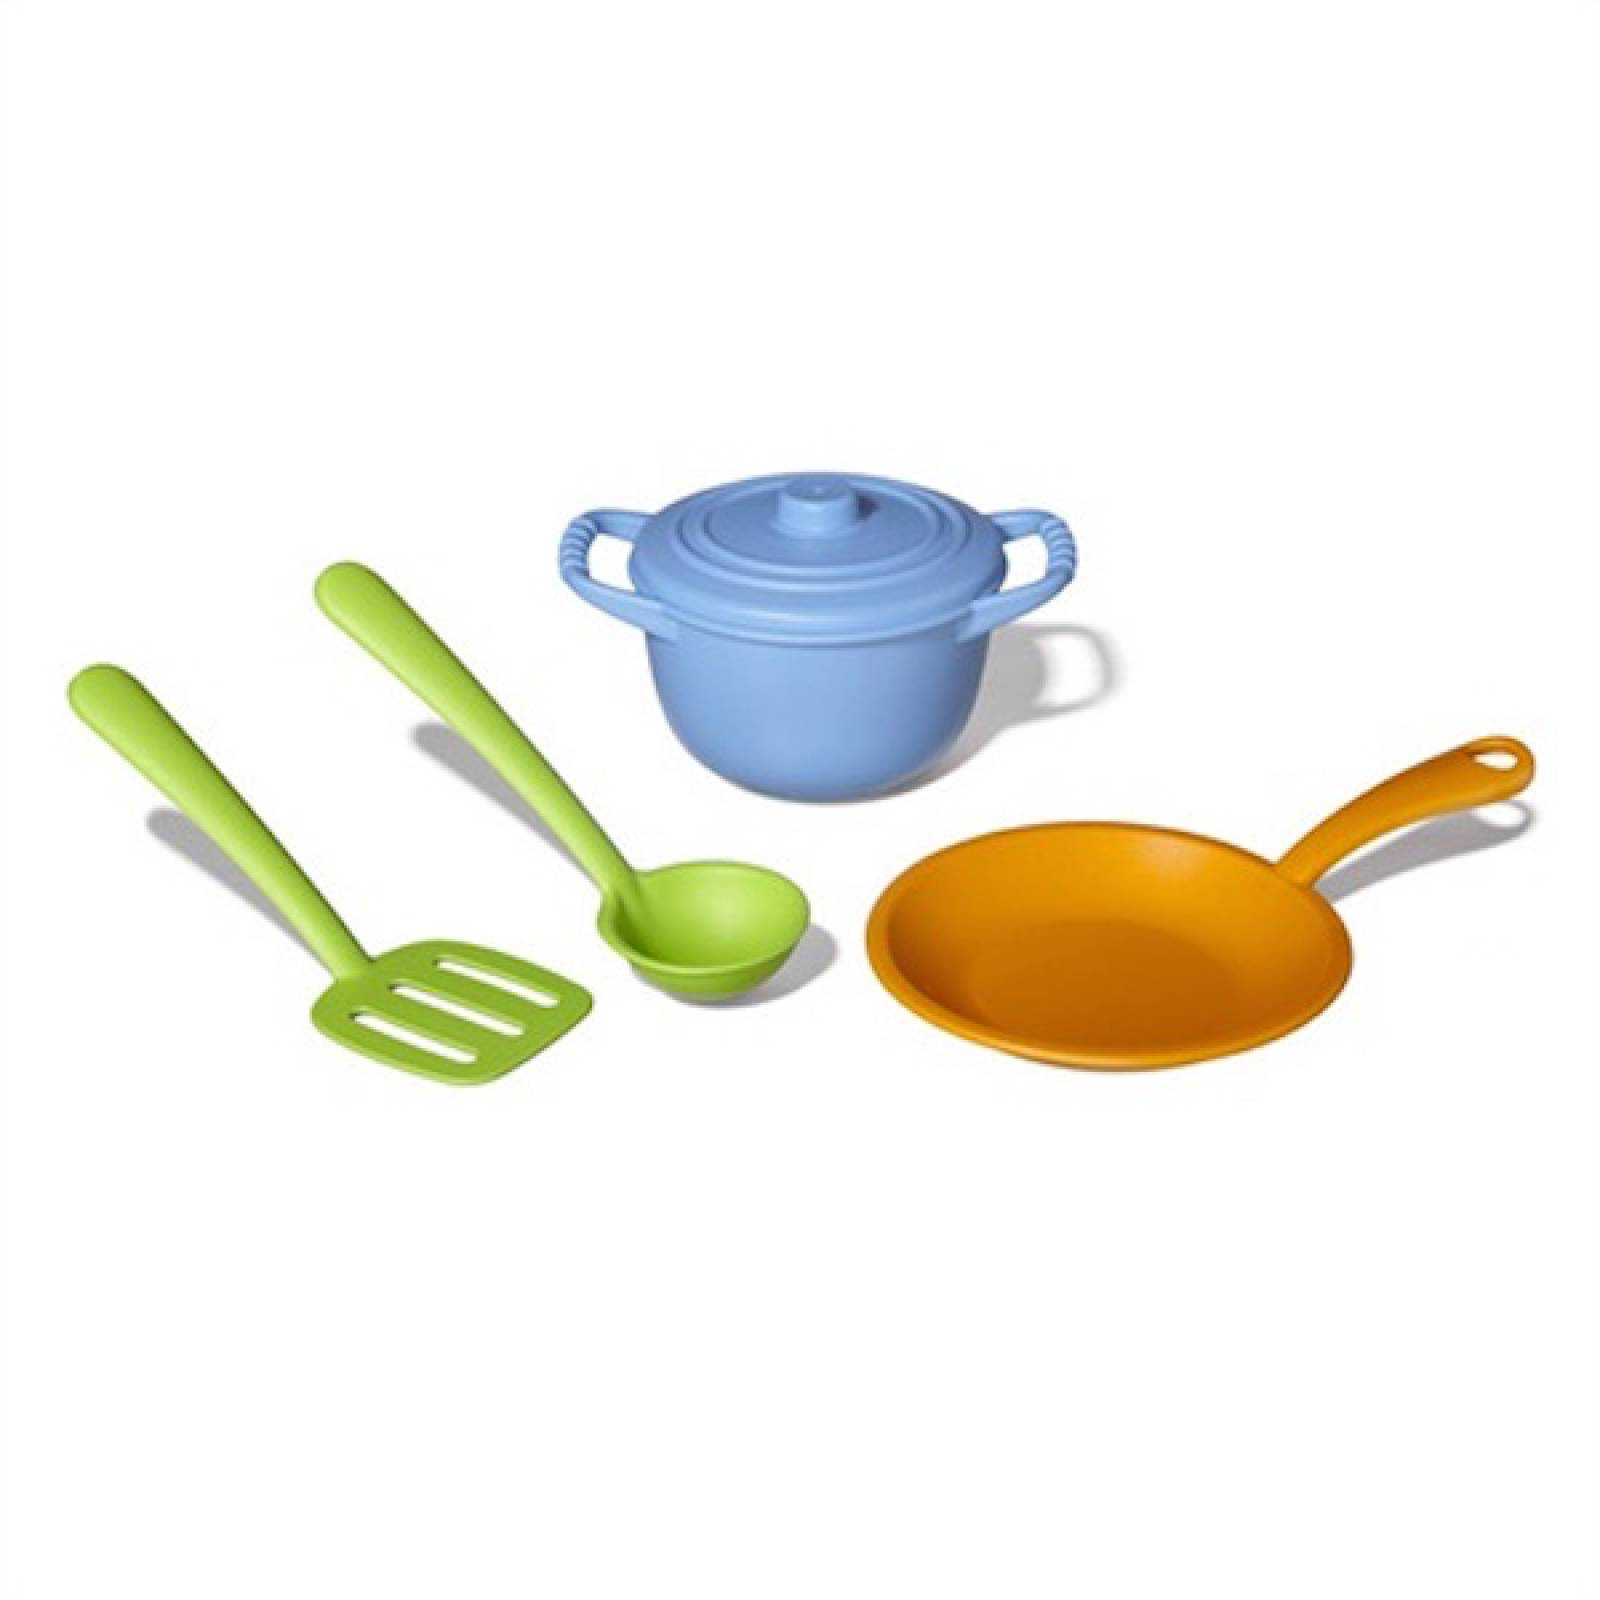 Toy Chef Set By Green Toys 2+